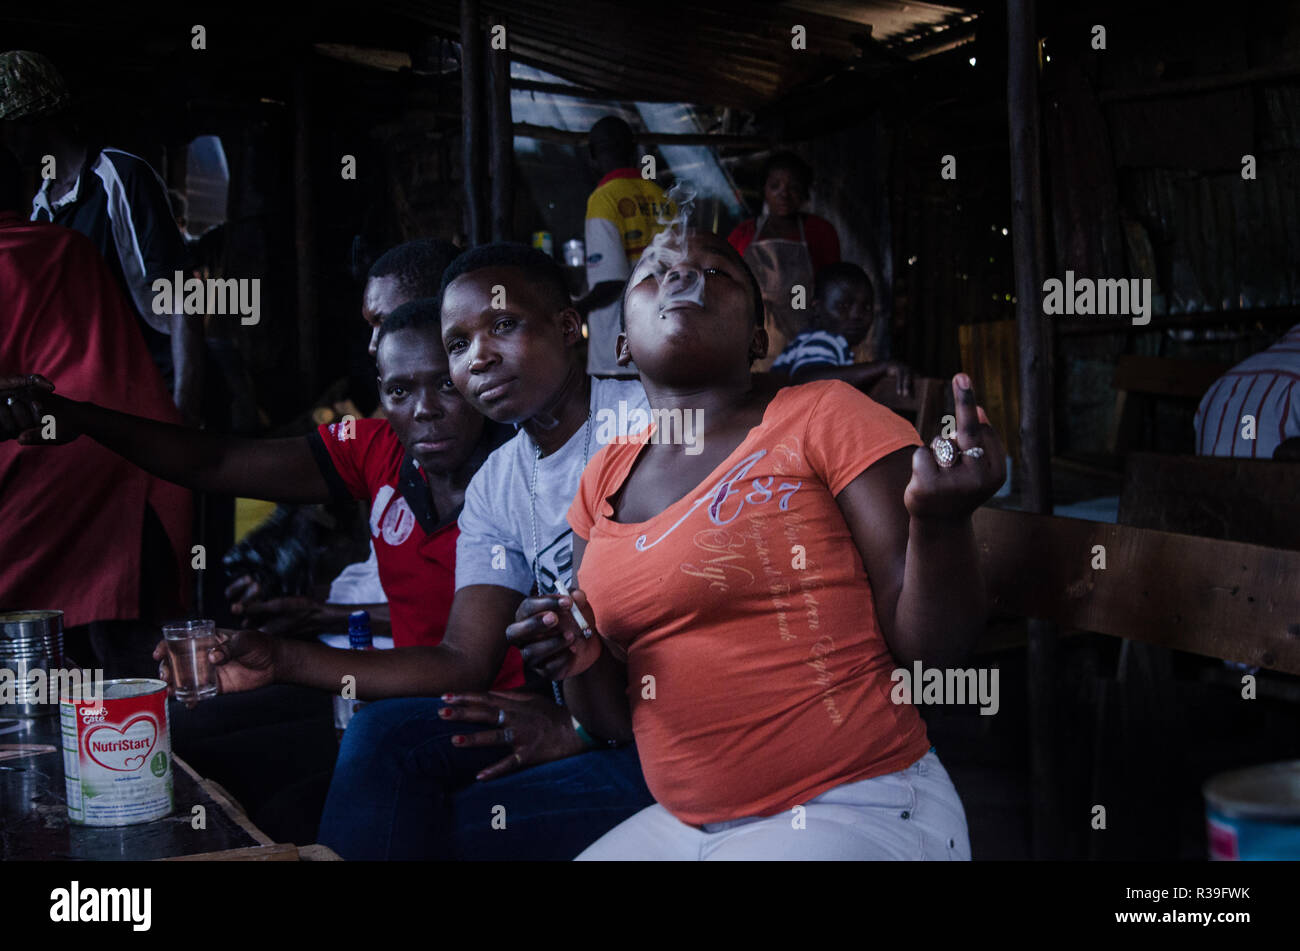 Kenya. 16th Nov, 2018. Women of kibera are seen having fun with alcoholic drinks at a local bar.For a long period of time, most women from Kibera slums have been under the influence of Alcohol. Not considering the side effects, women here consume it for different reasons including taking over stress and forgetting about their family problems back home. This is due to lack of enough job opportunities and support from their husbands.The high level of alcohol consumption has led to higher rate of deaths, blindness, and risk of many dangerous diseases such as cancer, hypertension, stroke and - Stock Image